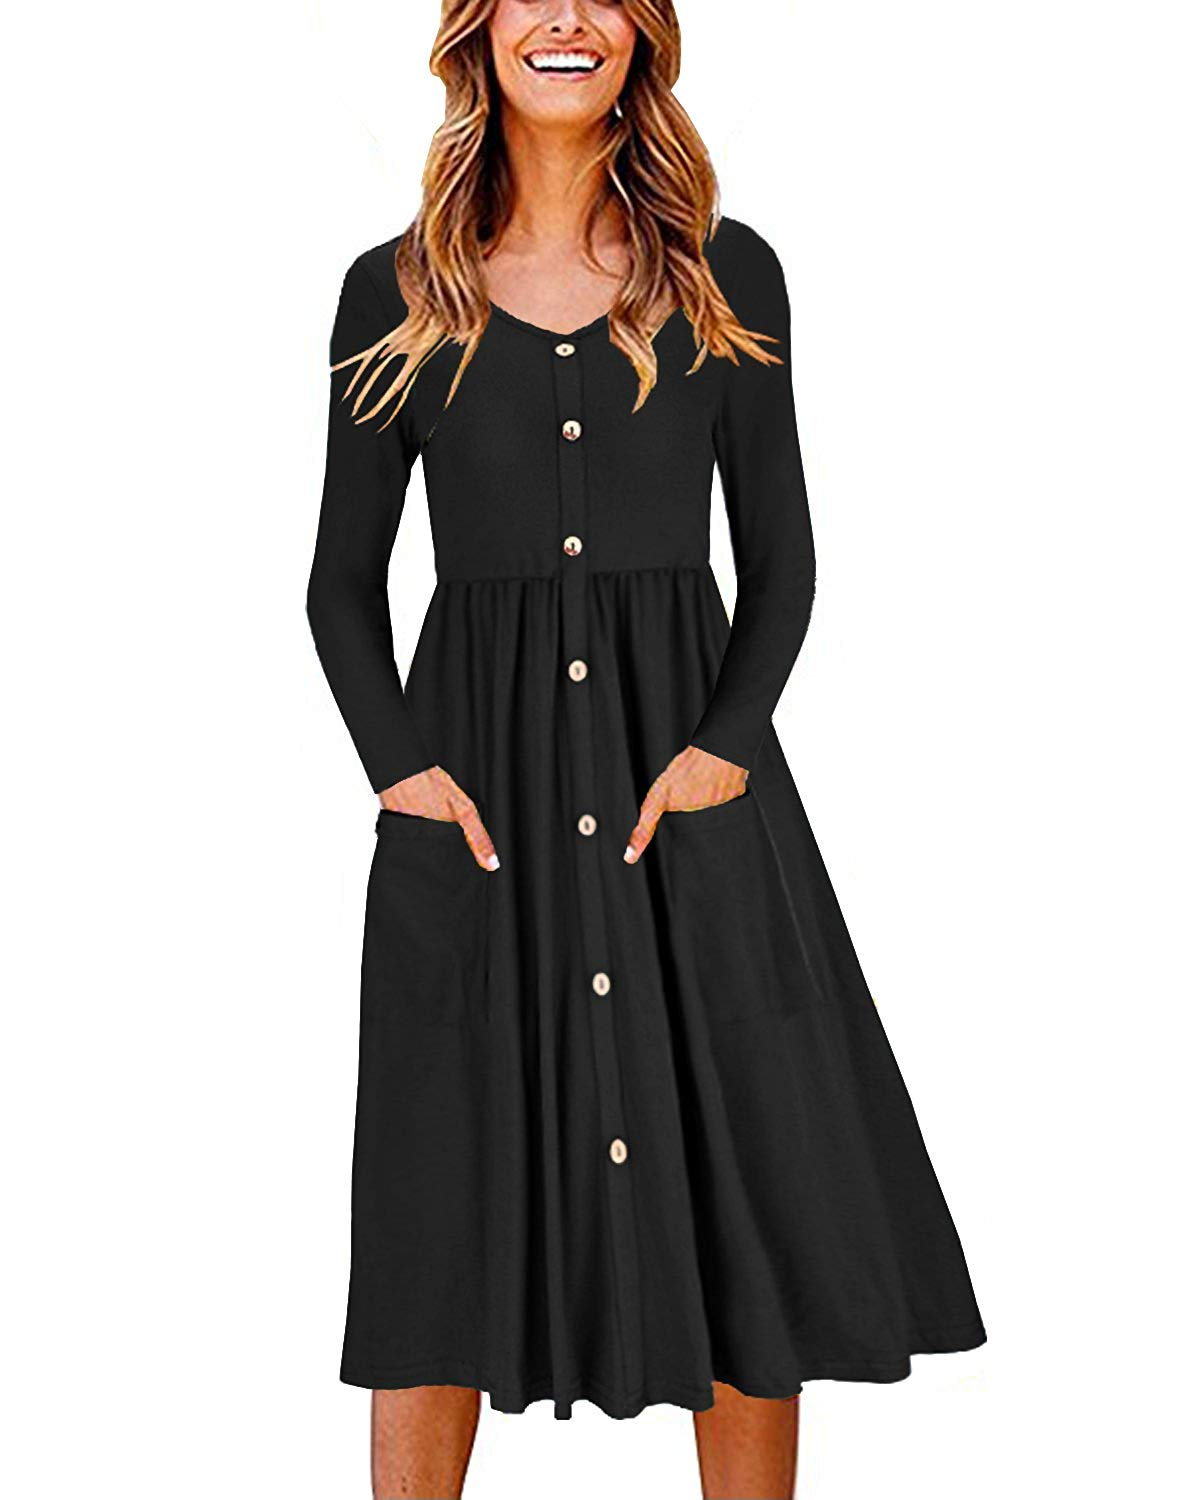 Ouges Long-Sleeve Button-Front Pocket Dress